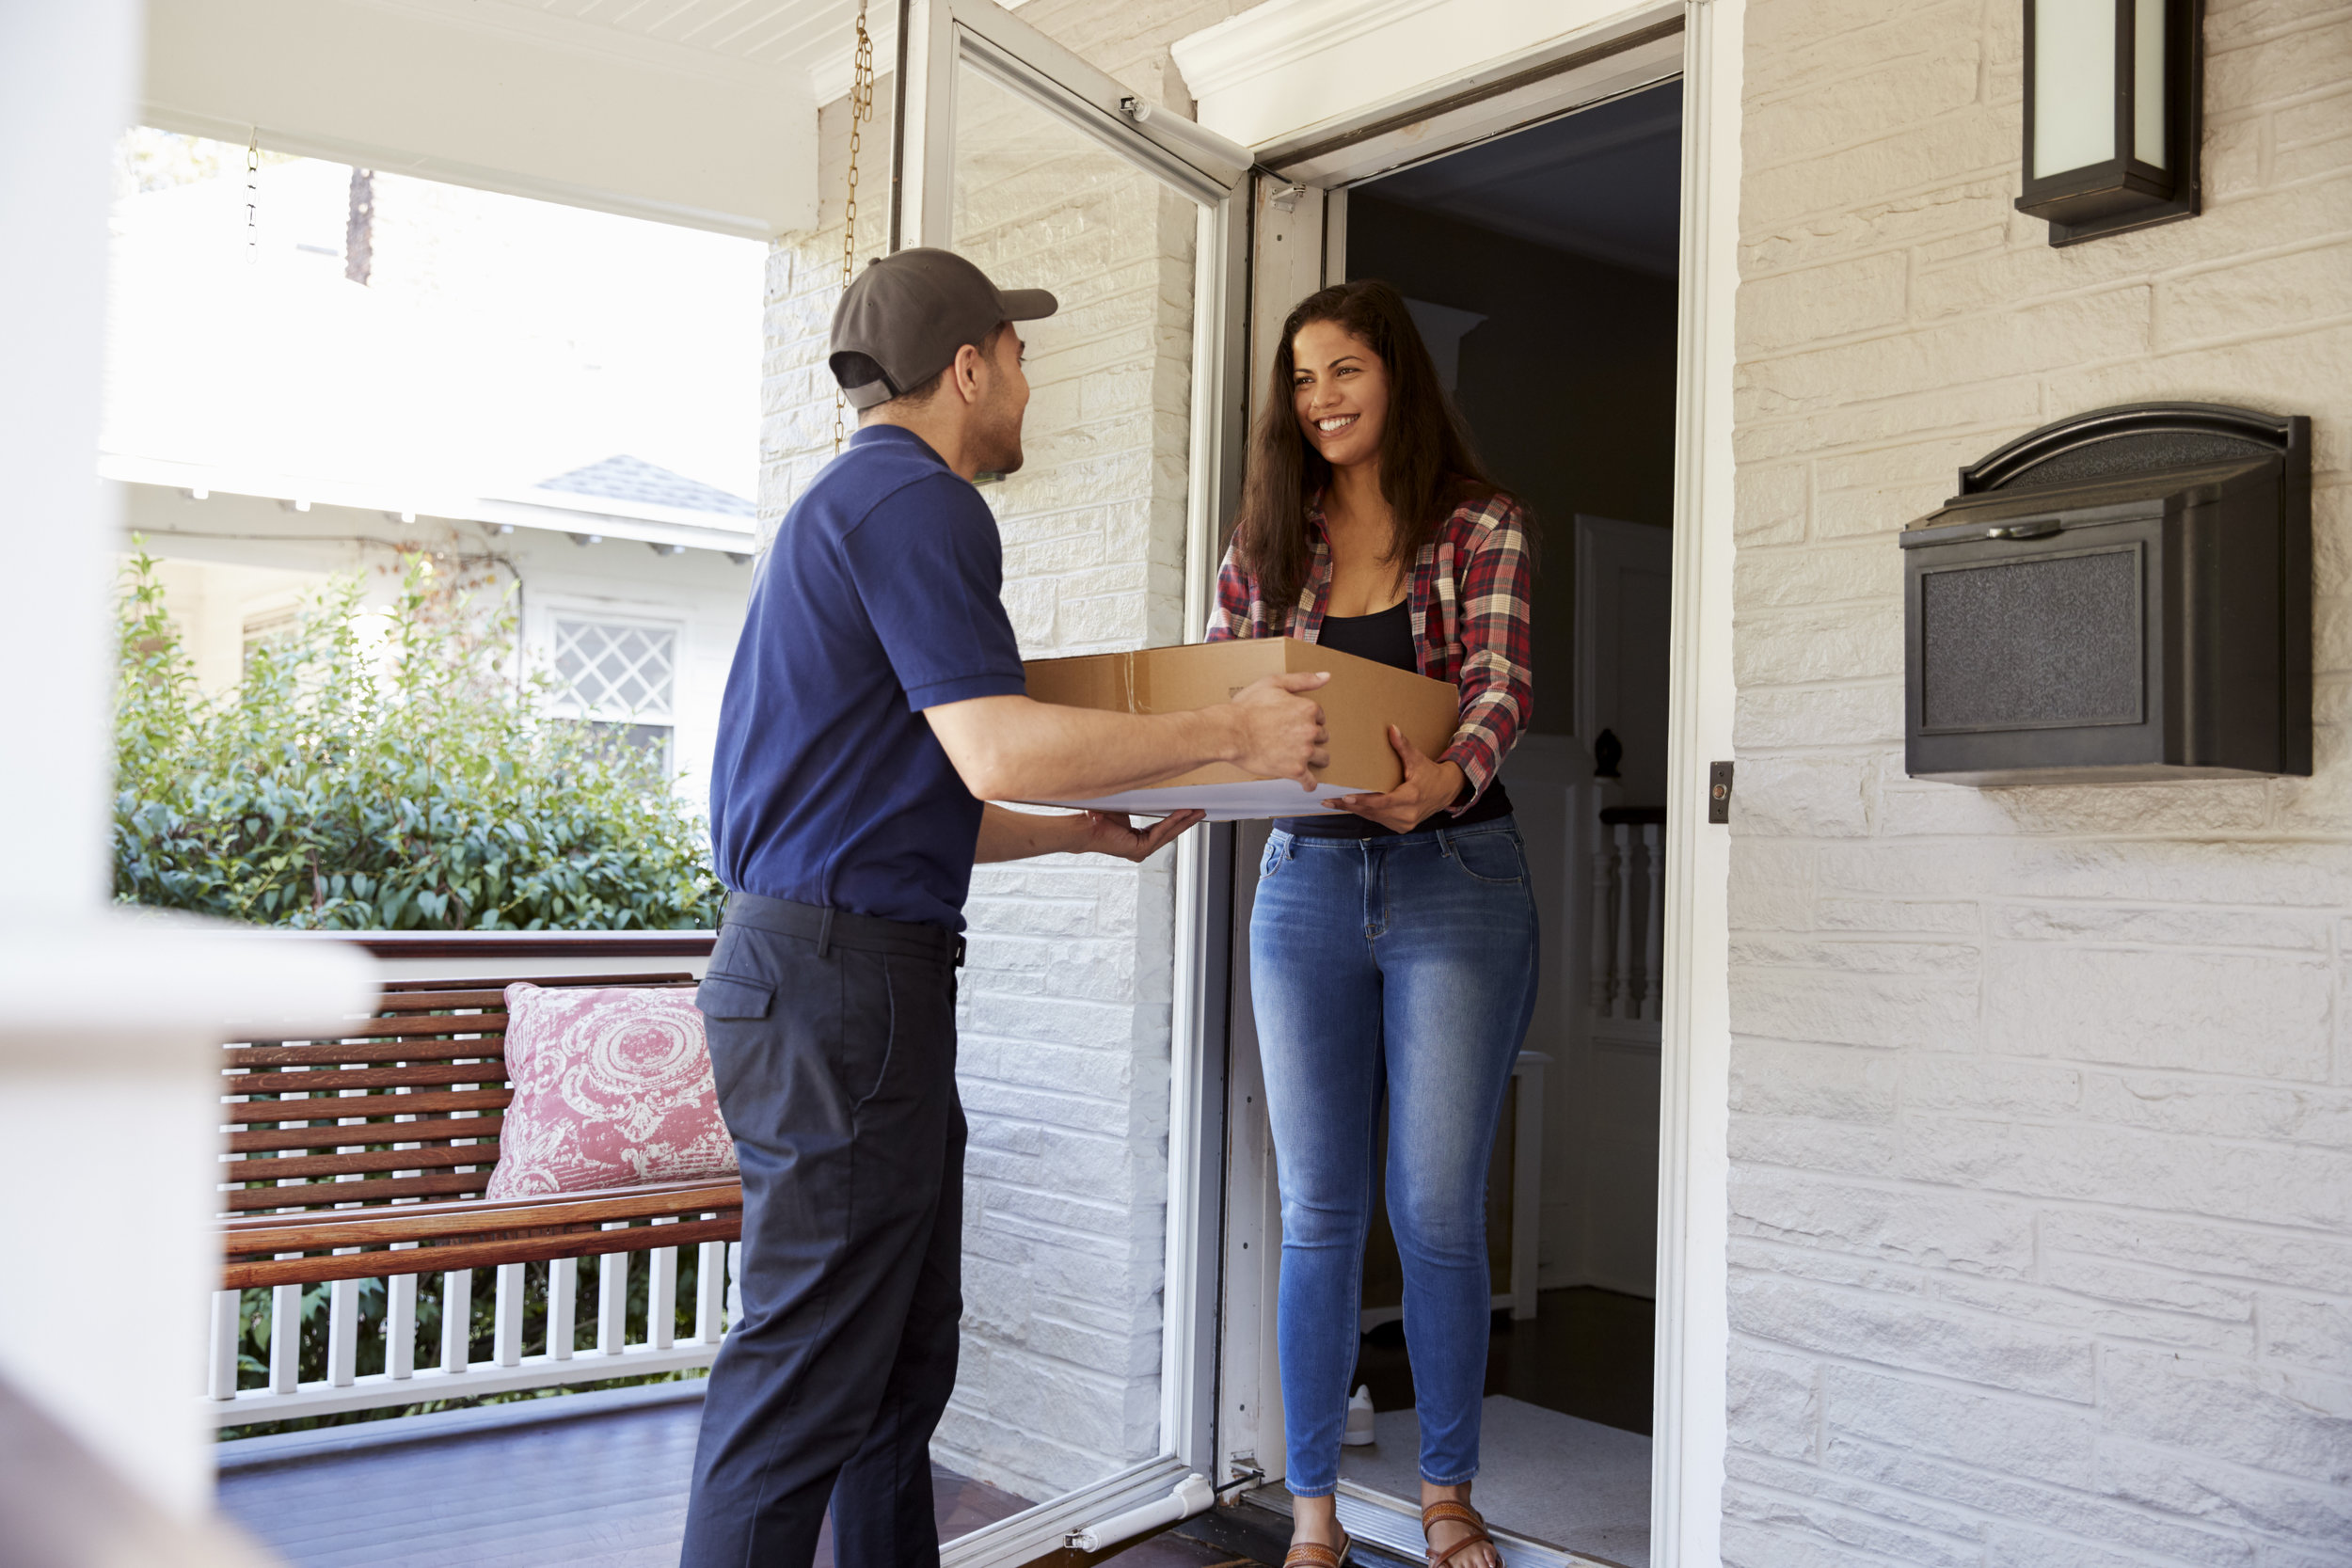 courier-delivering-package-to-woman-at-home-PR78SK6.jpg